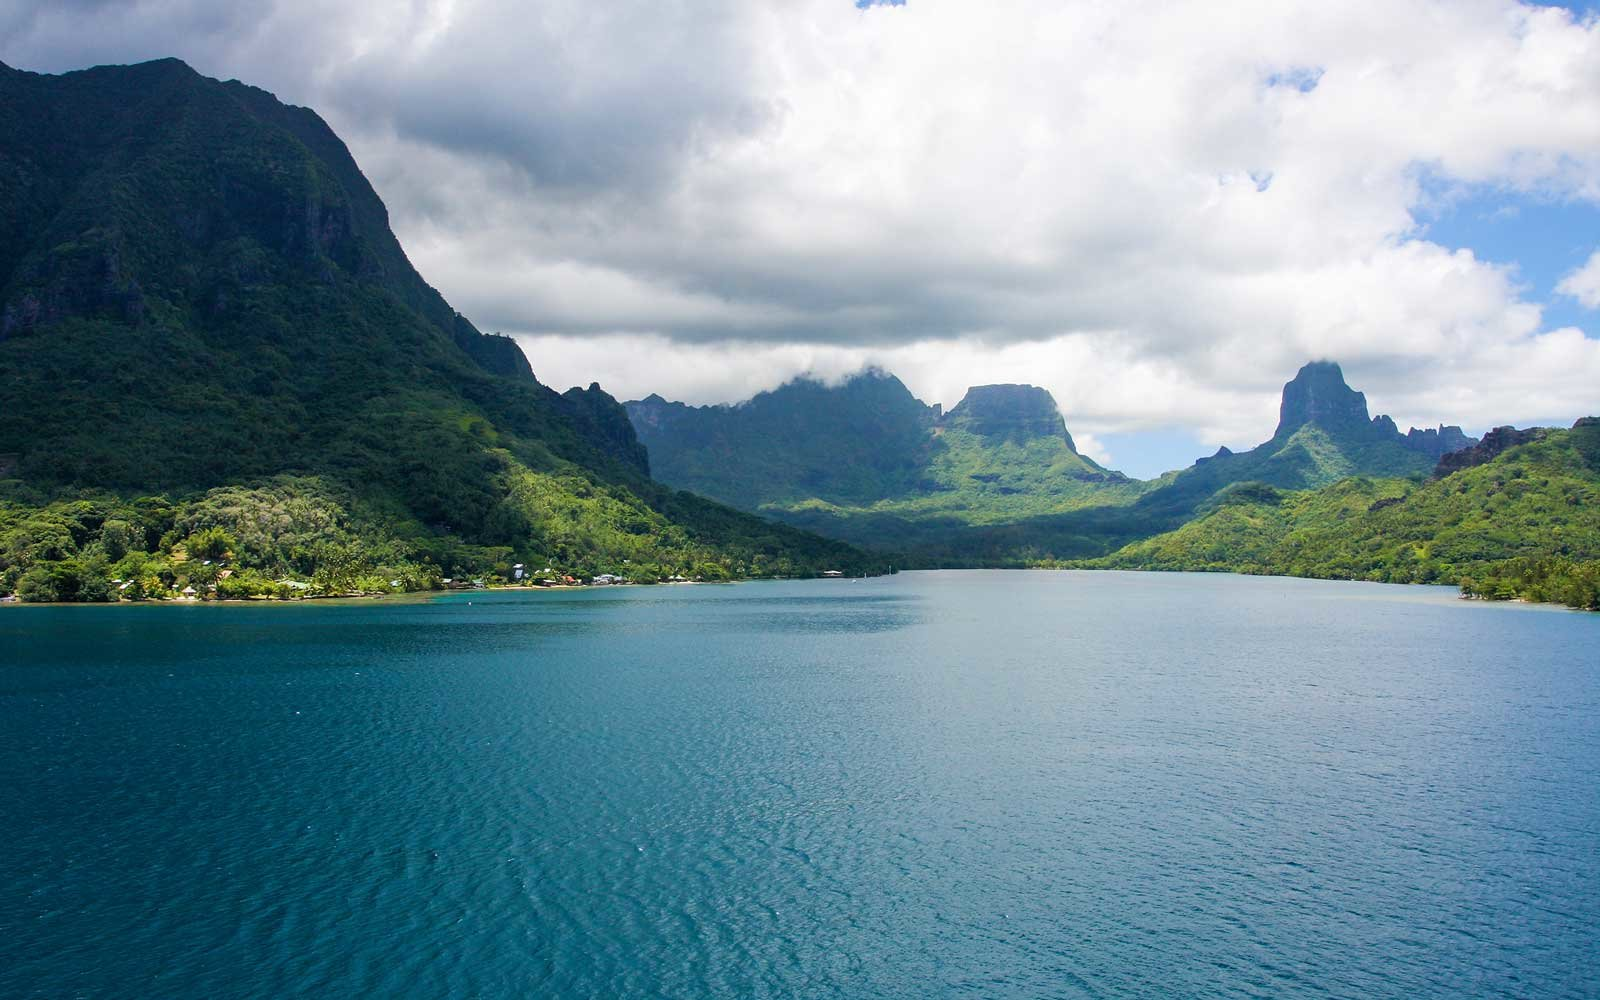 2. Moorea, French Polynesia